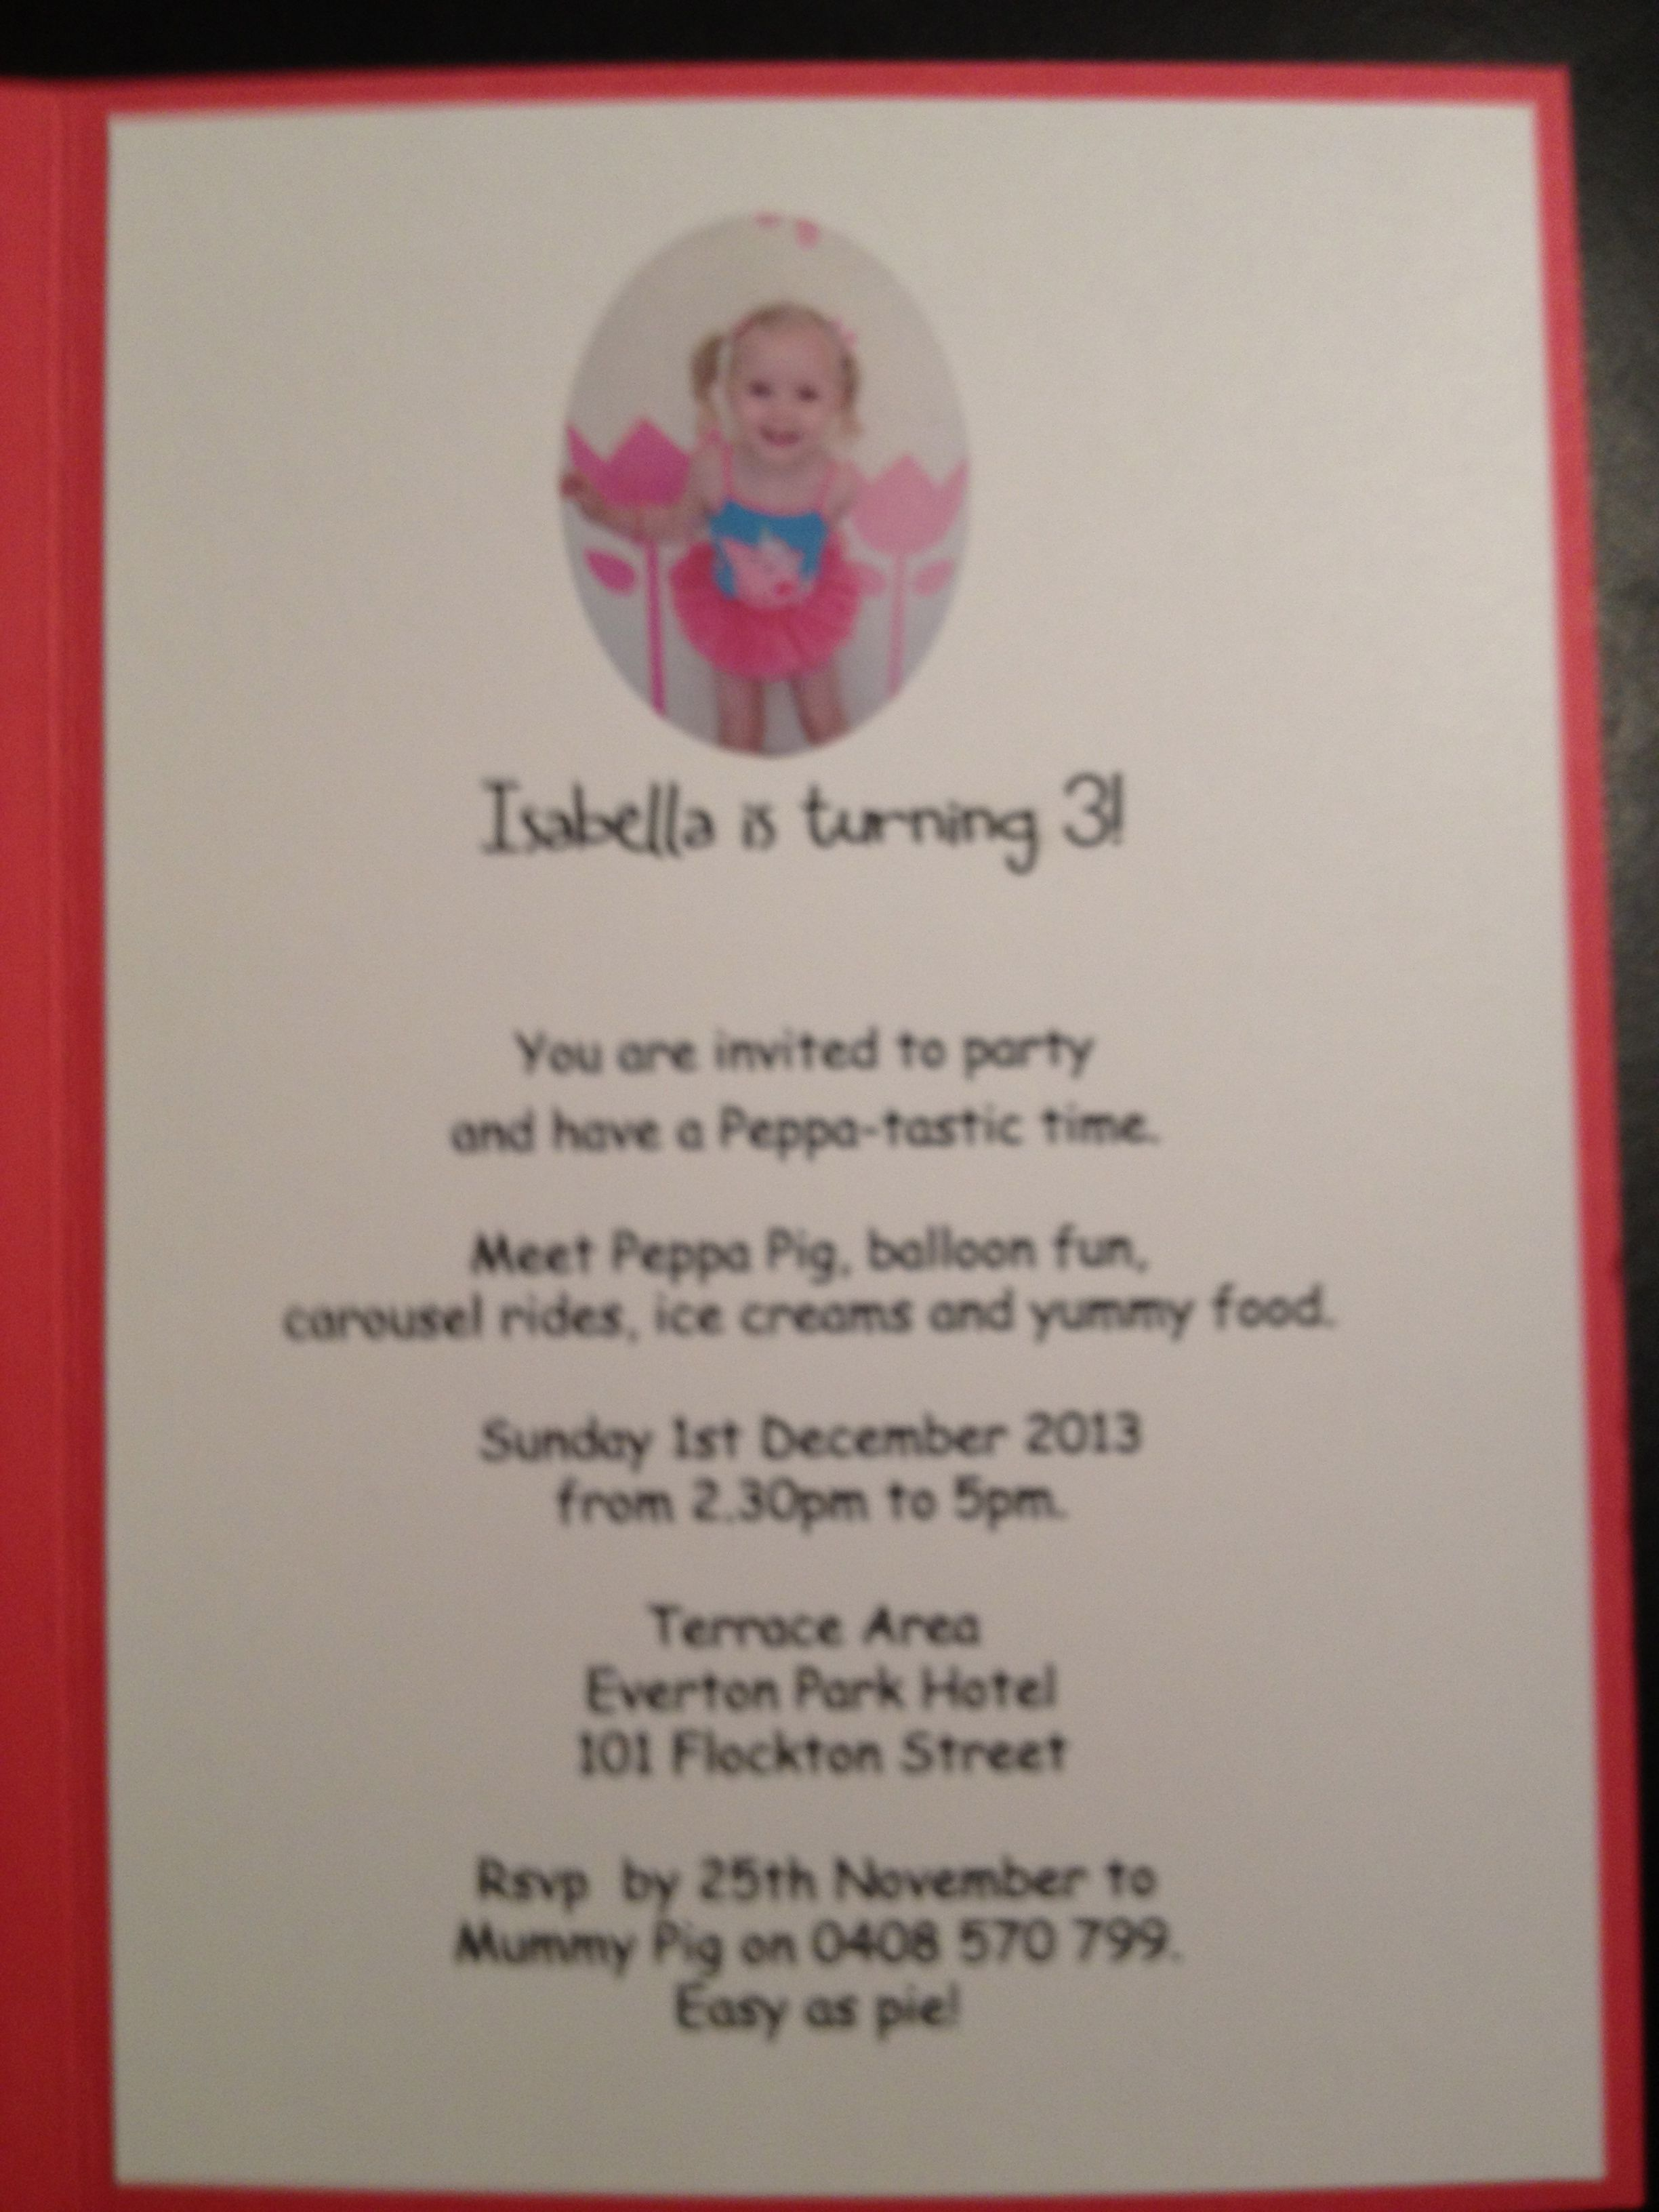 wording for peppa pig party invite